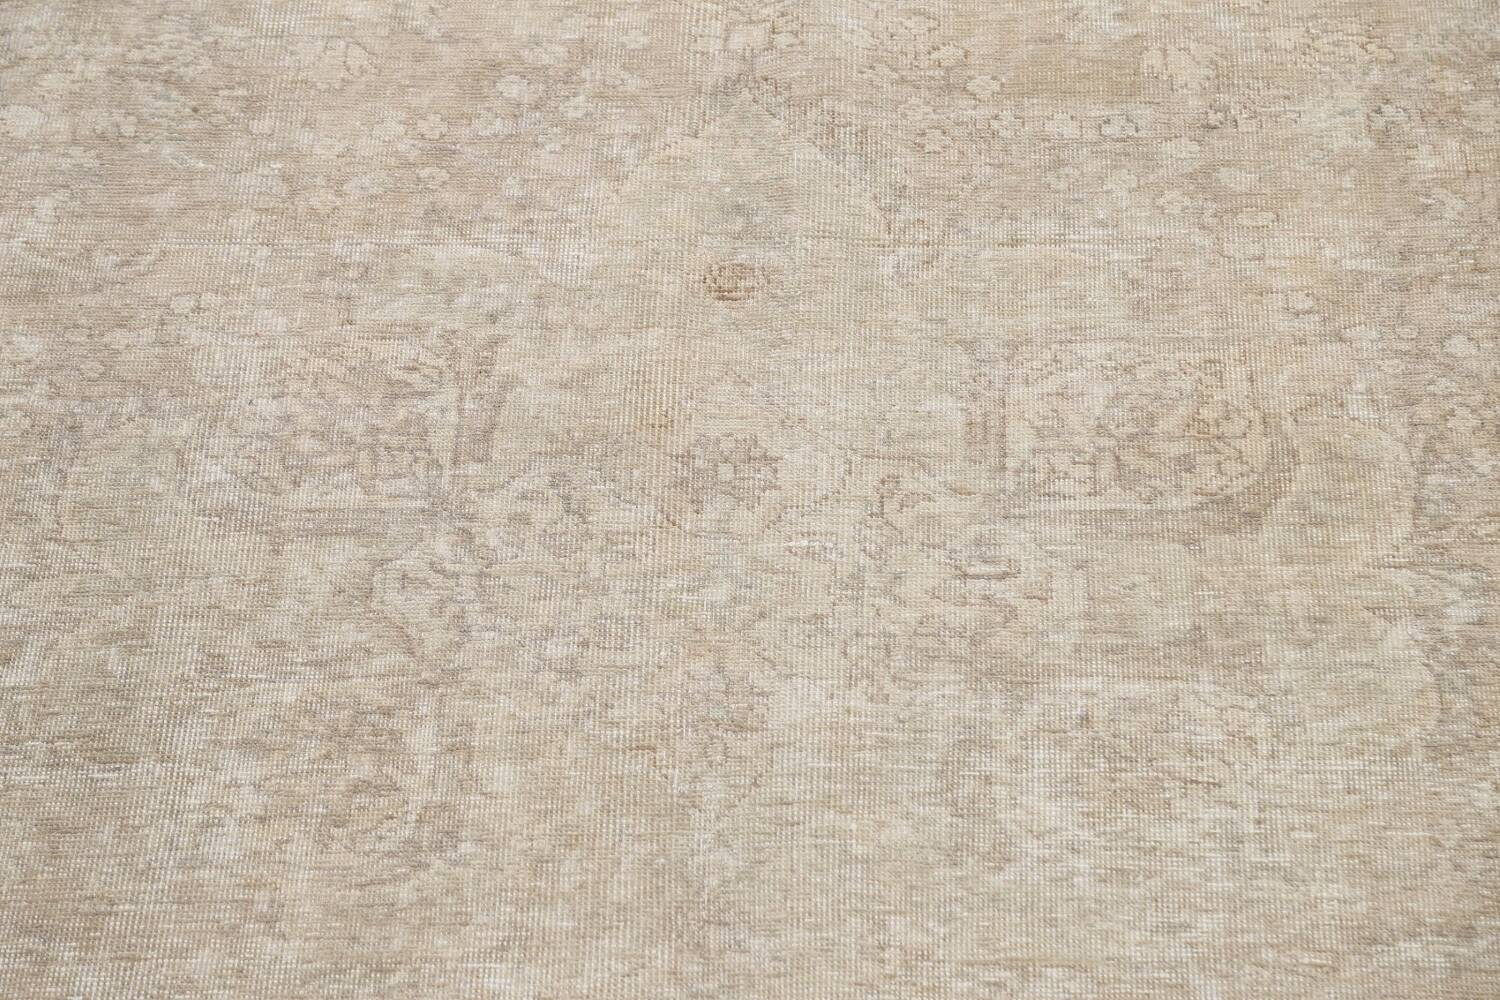 Muted Distressed Tabriz Persian Area Rug 9x12 image 4